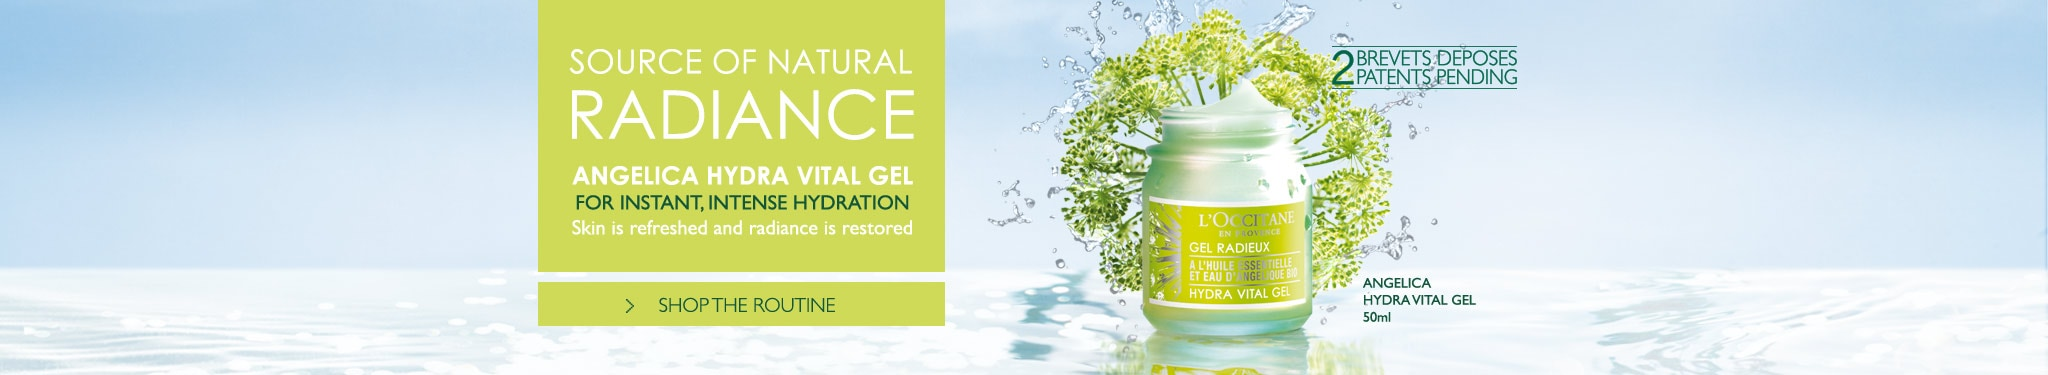 Source Of Natural Radiance, Angelica Hydra Vital Gel for instant, intense hydration. Skin is refreshed and radiance is restored.